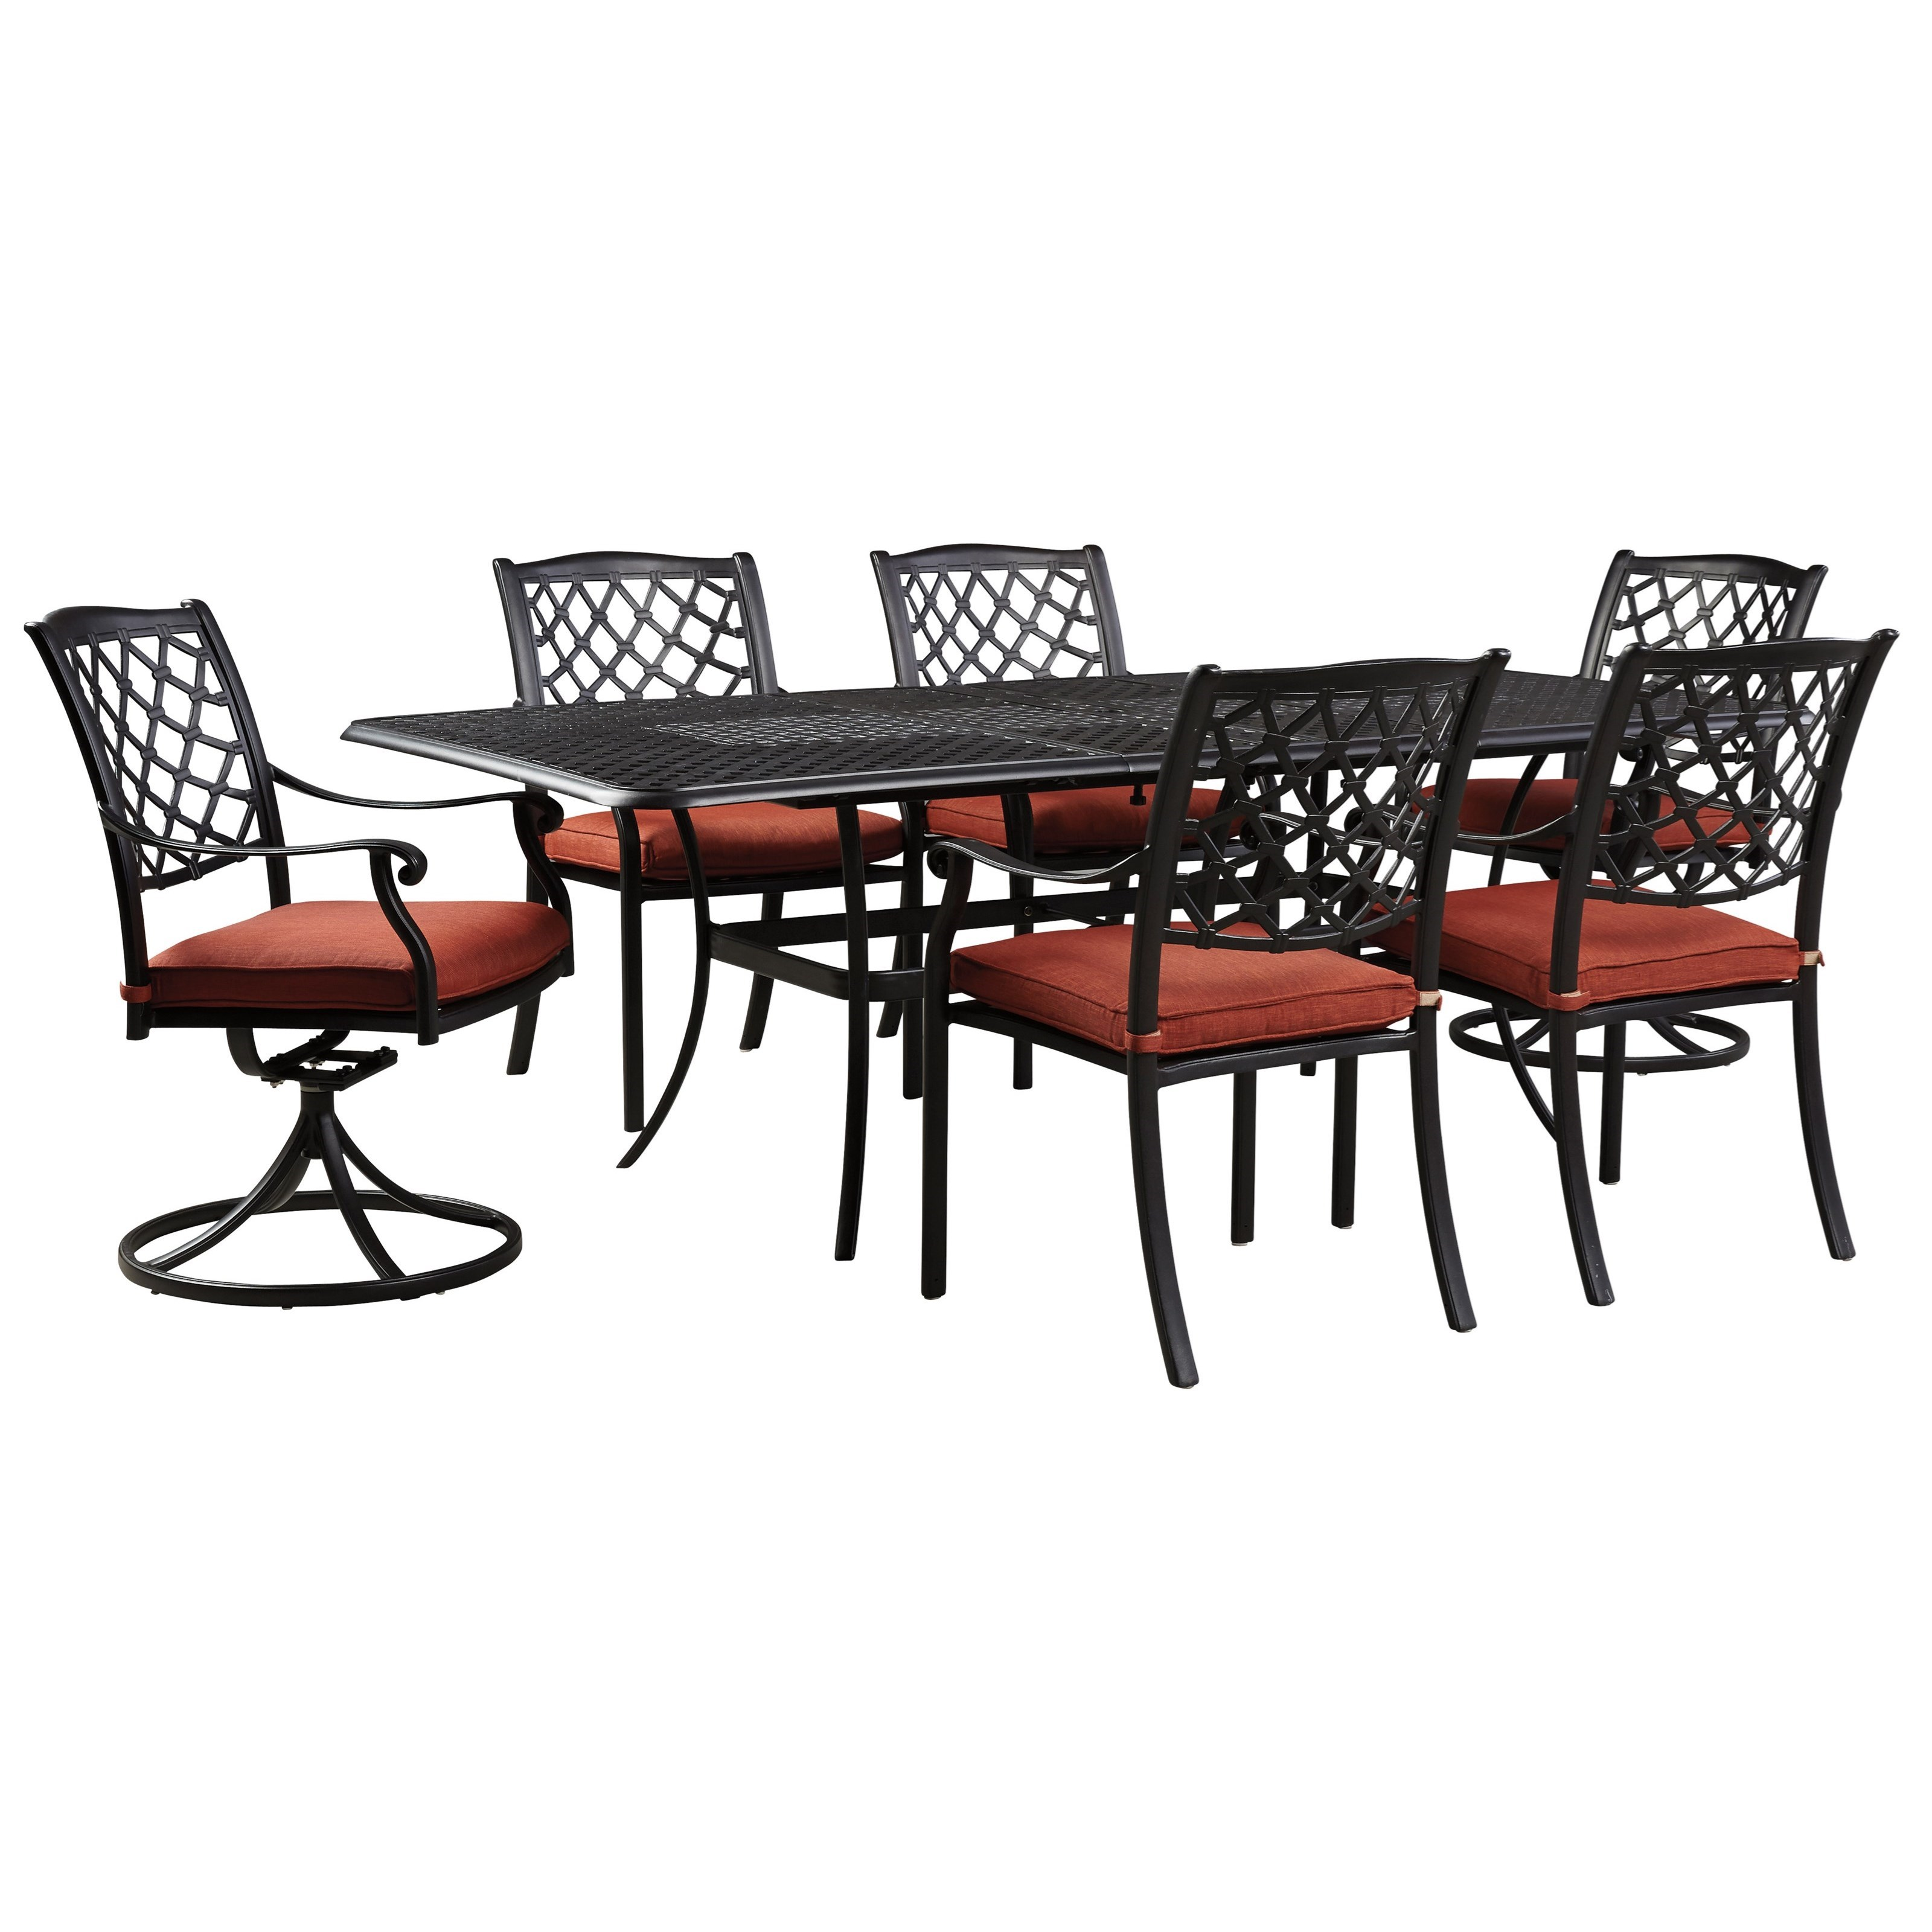 Signature Design by Ashley Tanglevale Outdoor Dining Table Set - Item Number: P557-635+602A+601A